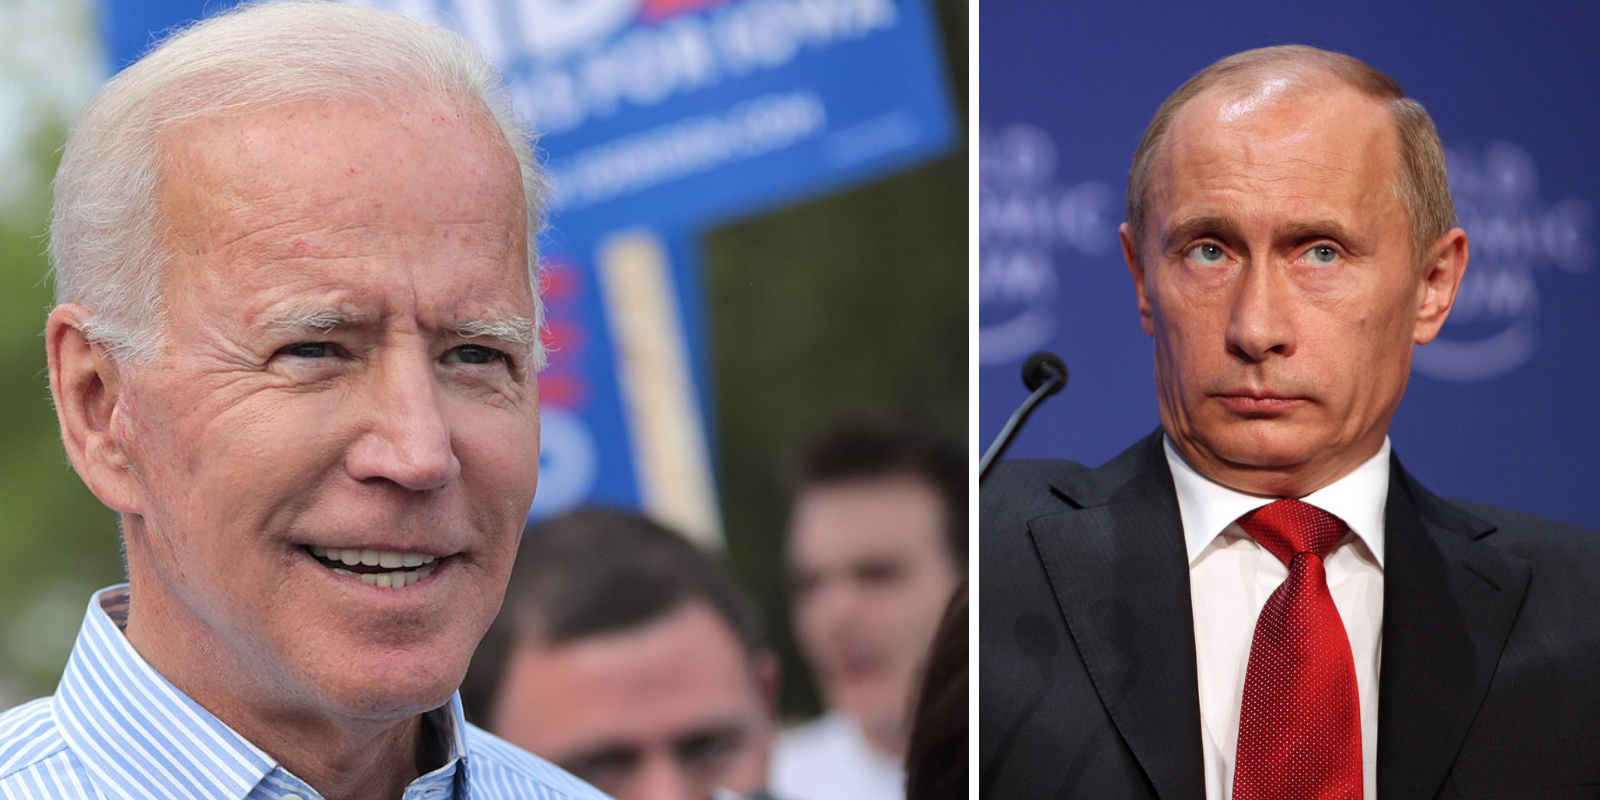 Biden administration condemns Russia for lack of transparency in election marred by allegations of fraud